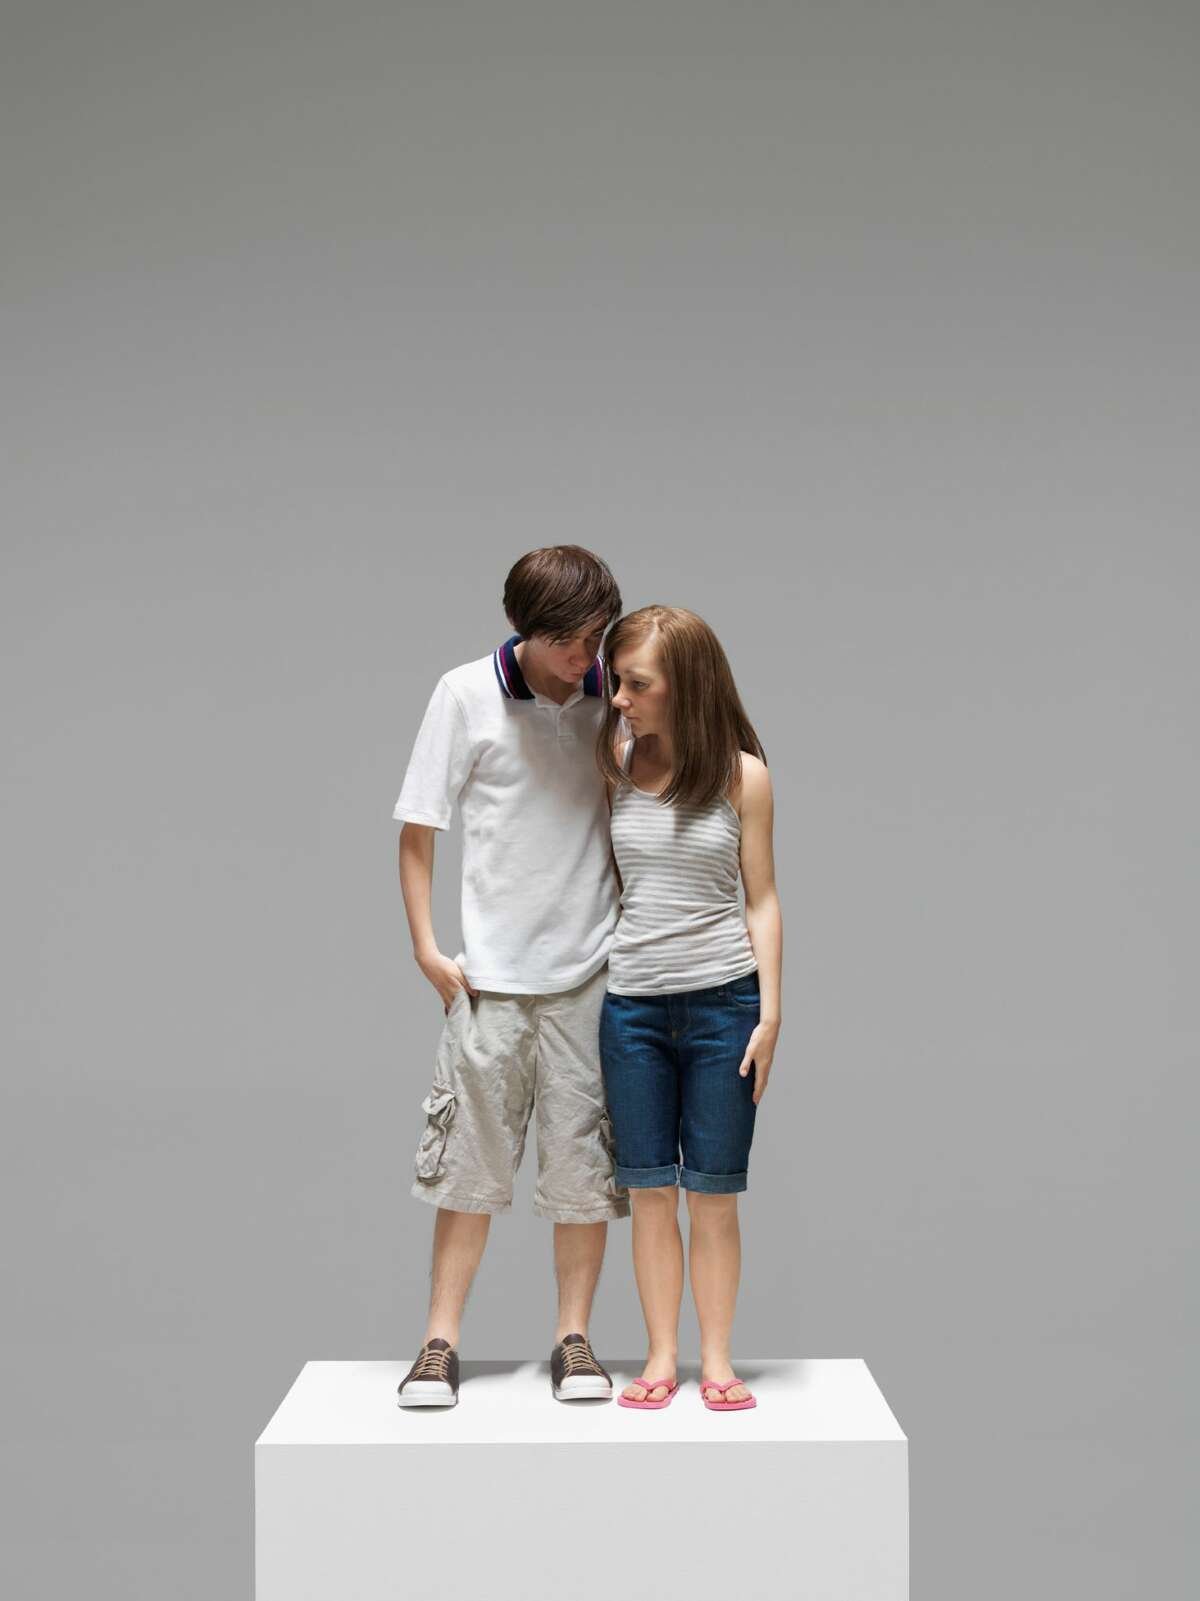 Ron Mueck, Young Couple, 2013.